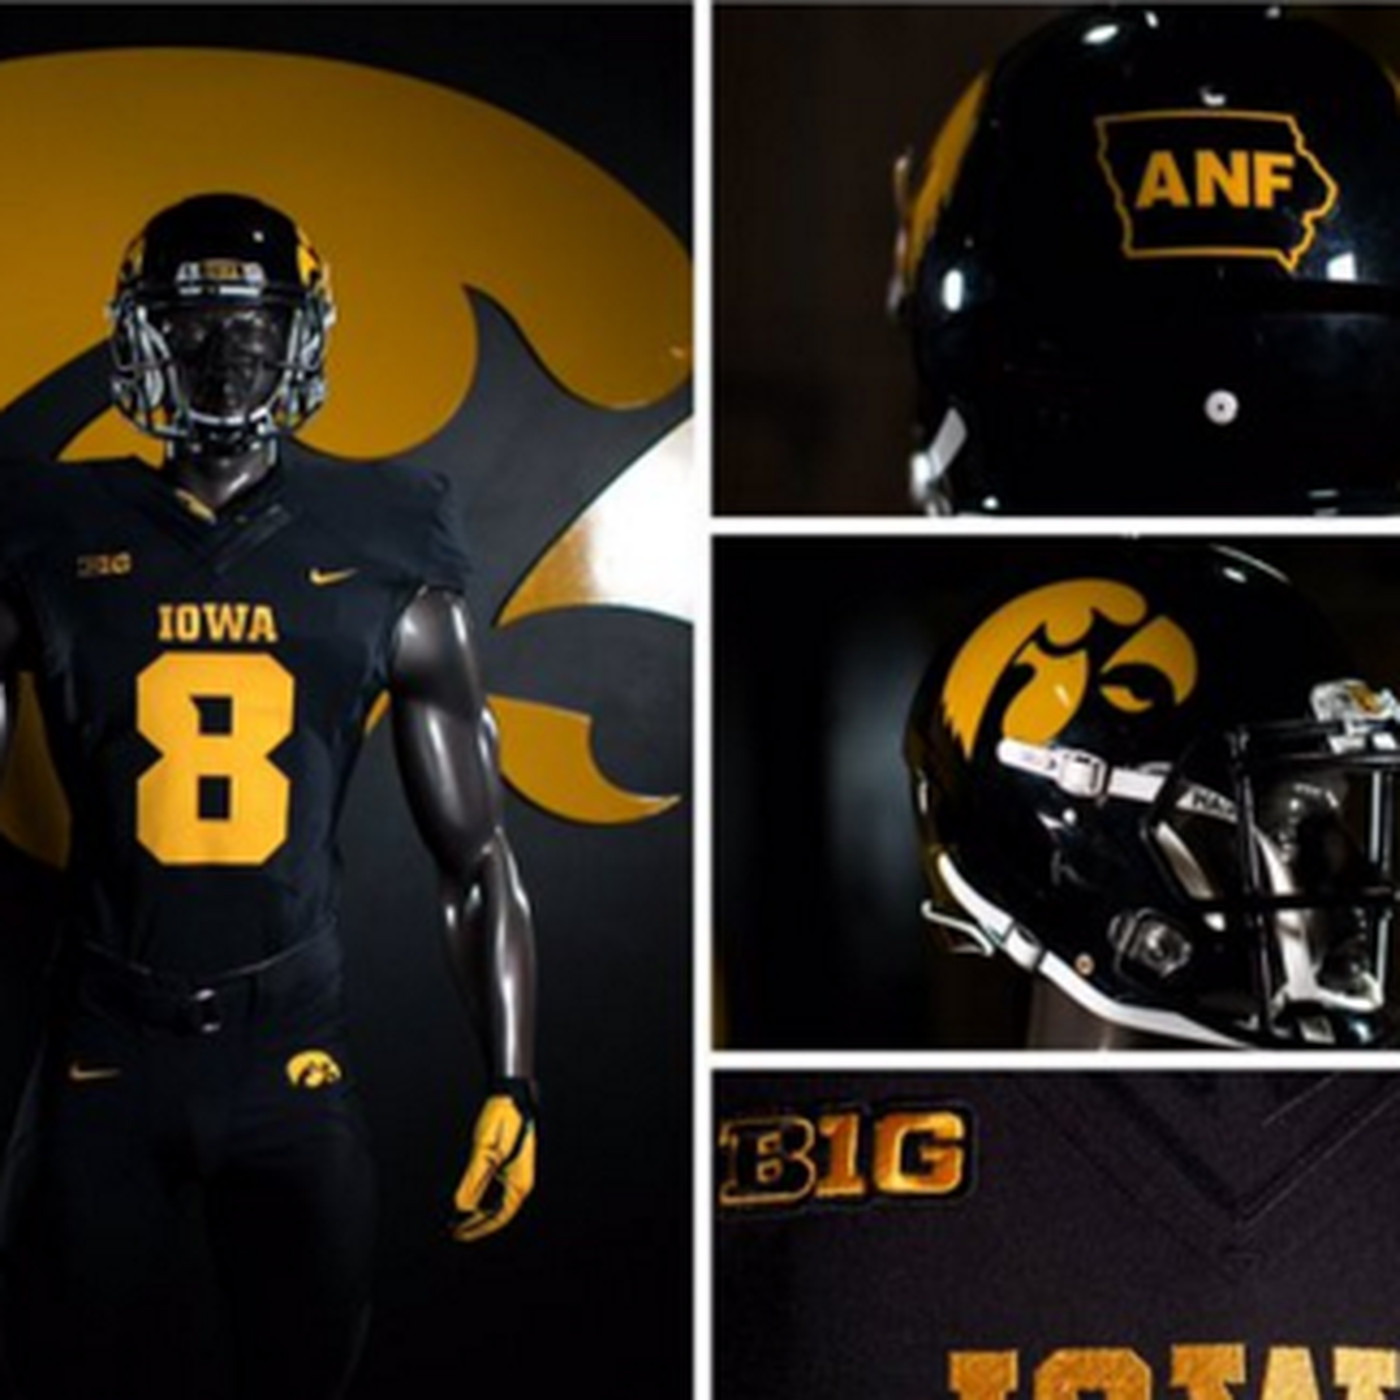 separation shoes 99b8e 85dc6 HERE'S YOUR IOWA HAWKEYE BLACKOUT UNIFORMS FOR TONIGHT ...